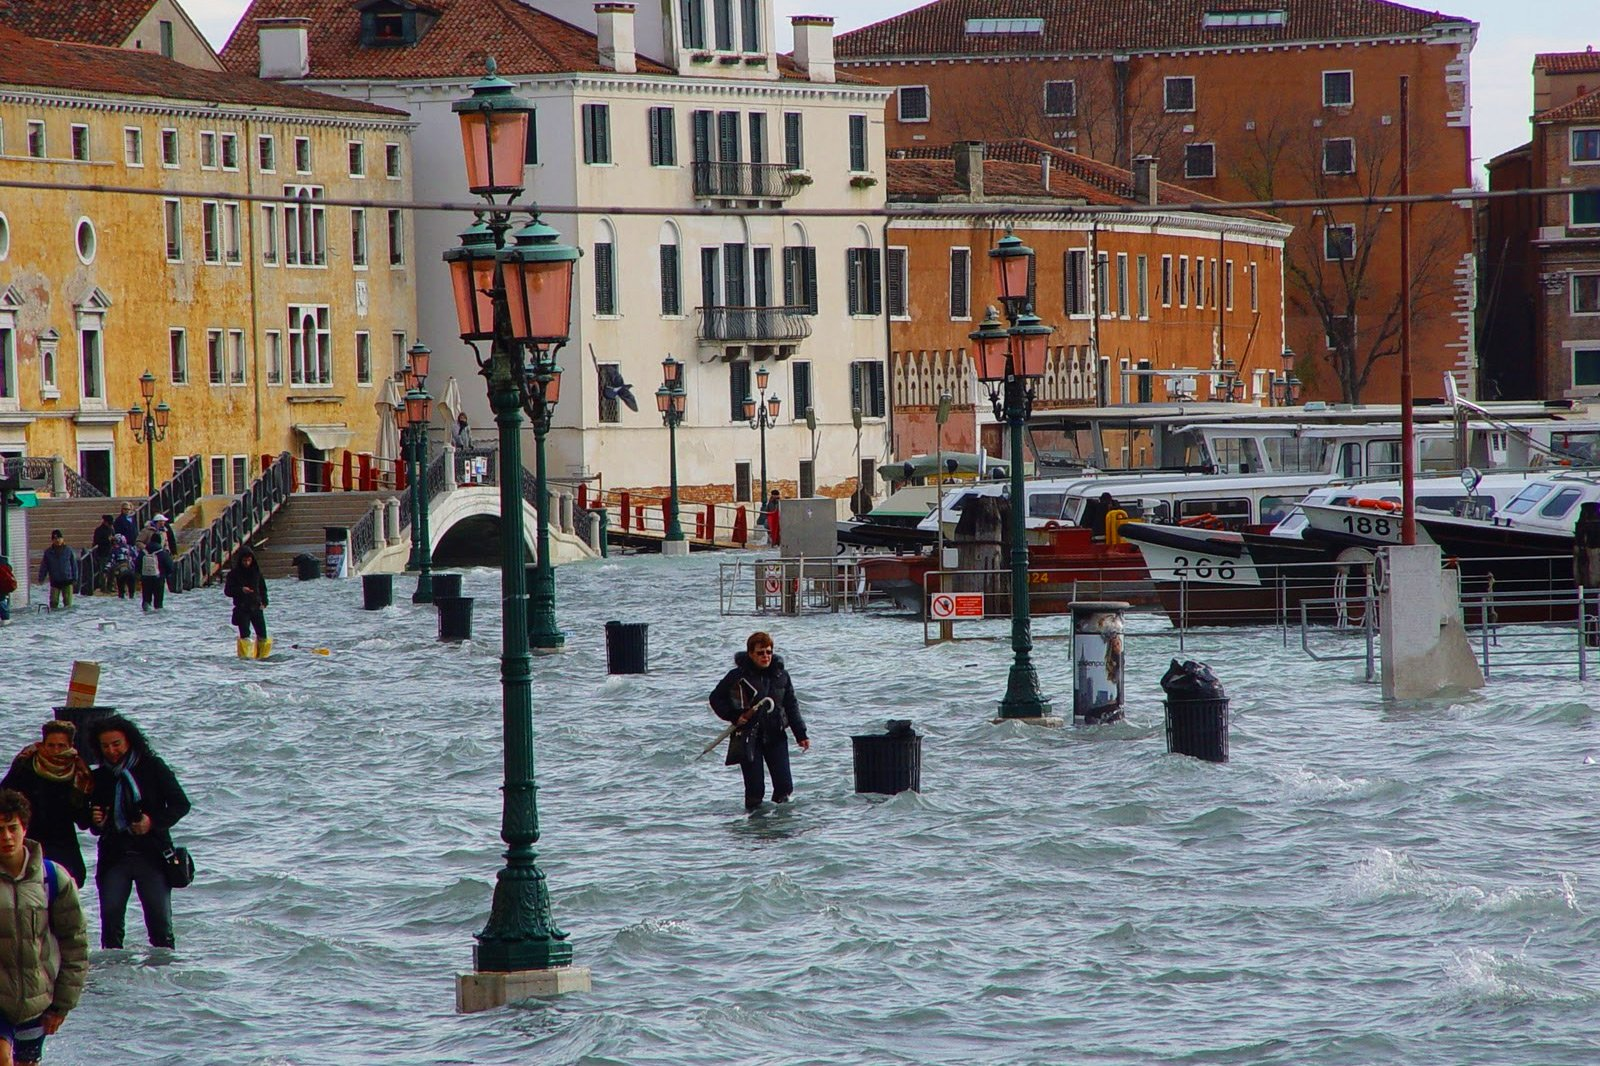 How to see the famous Acqua Alta flooding in Venice